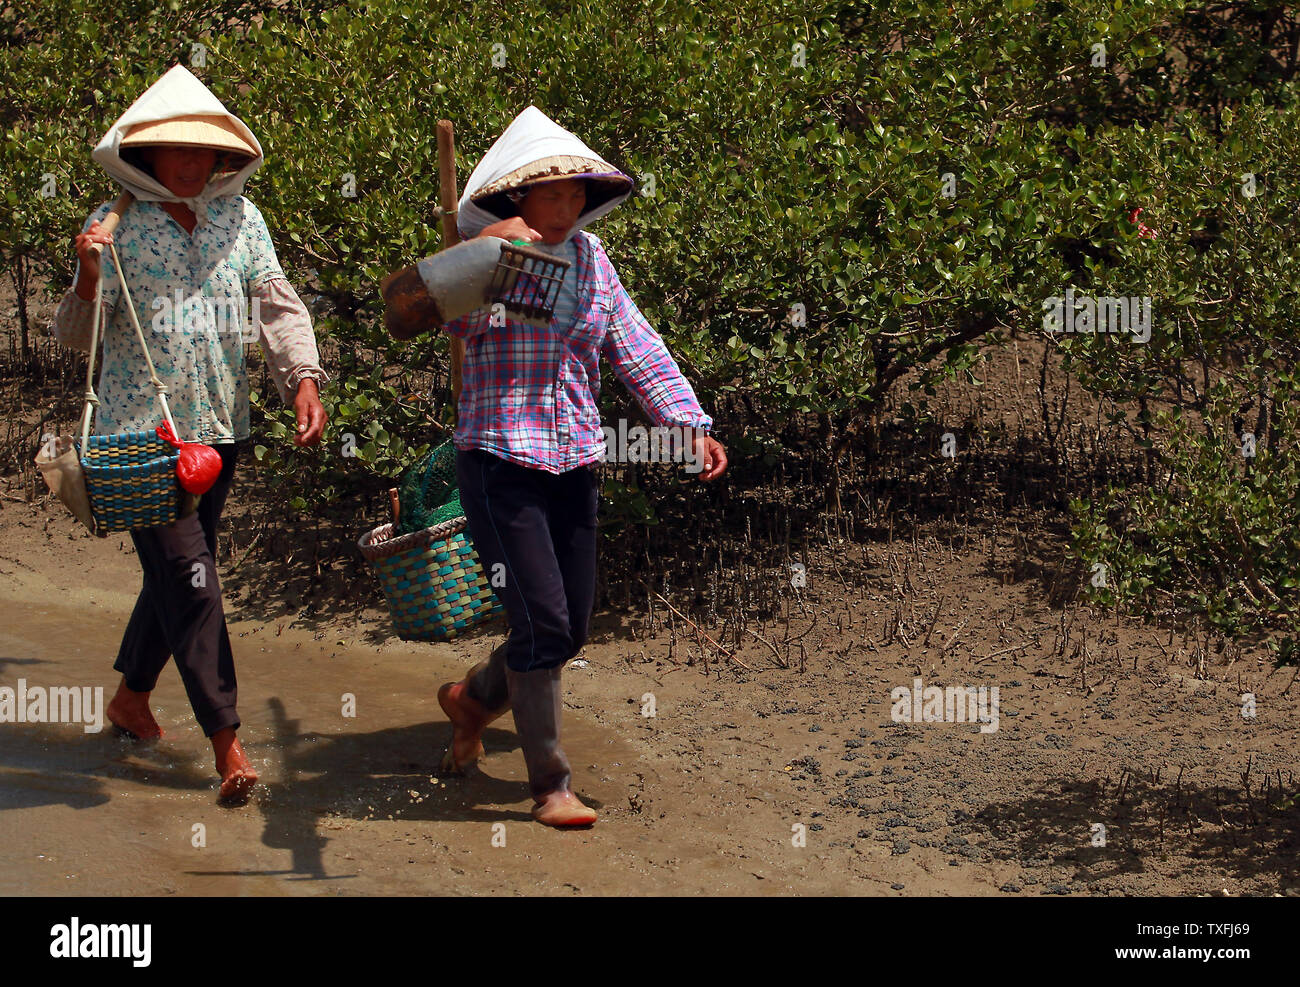 Chinese-Vietnamese women walk through a mangrove estuary on their way to look for sand worms in Beihai, a coastal city in southern Guangxi Province, China on August 29, 2014.  The sand worms are an expensive local delicacy, whose harvesting helps support a large traditional fishing population.       UPI/Stephen Shaver Stock Photo